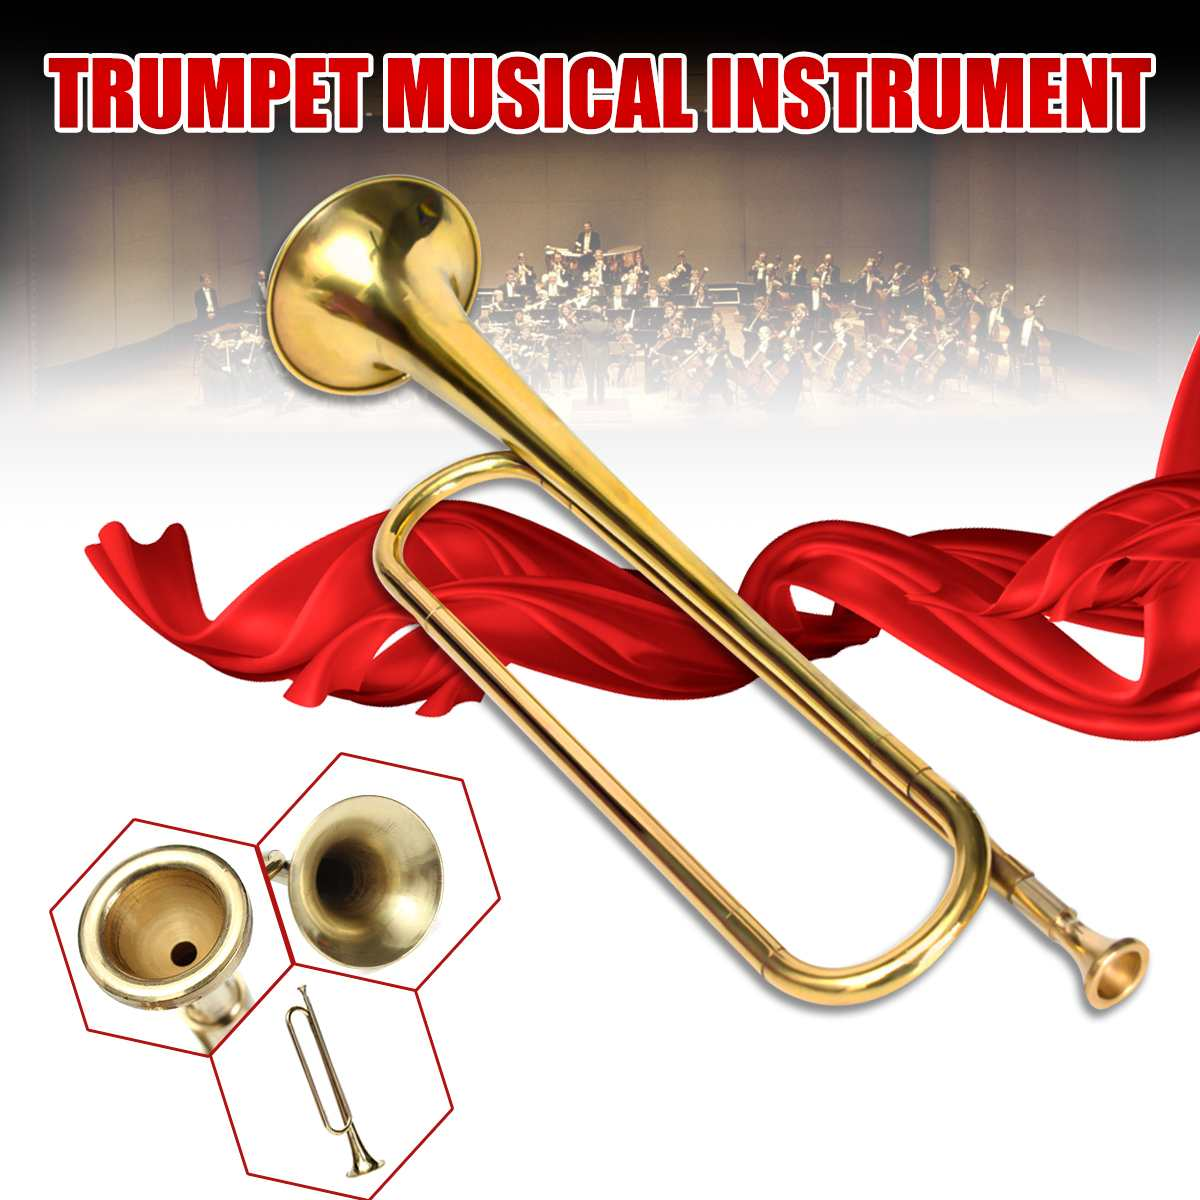 1x Retro B Flat Bugle Trumpet Horn Musical Instruments Military School Bands Cavalry Beginner Training Orchestra Gift NEWx